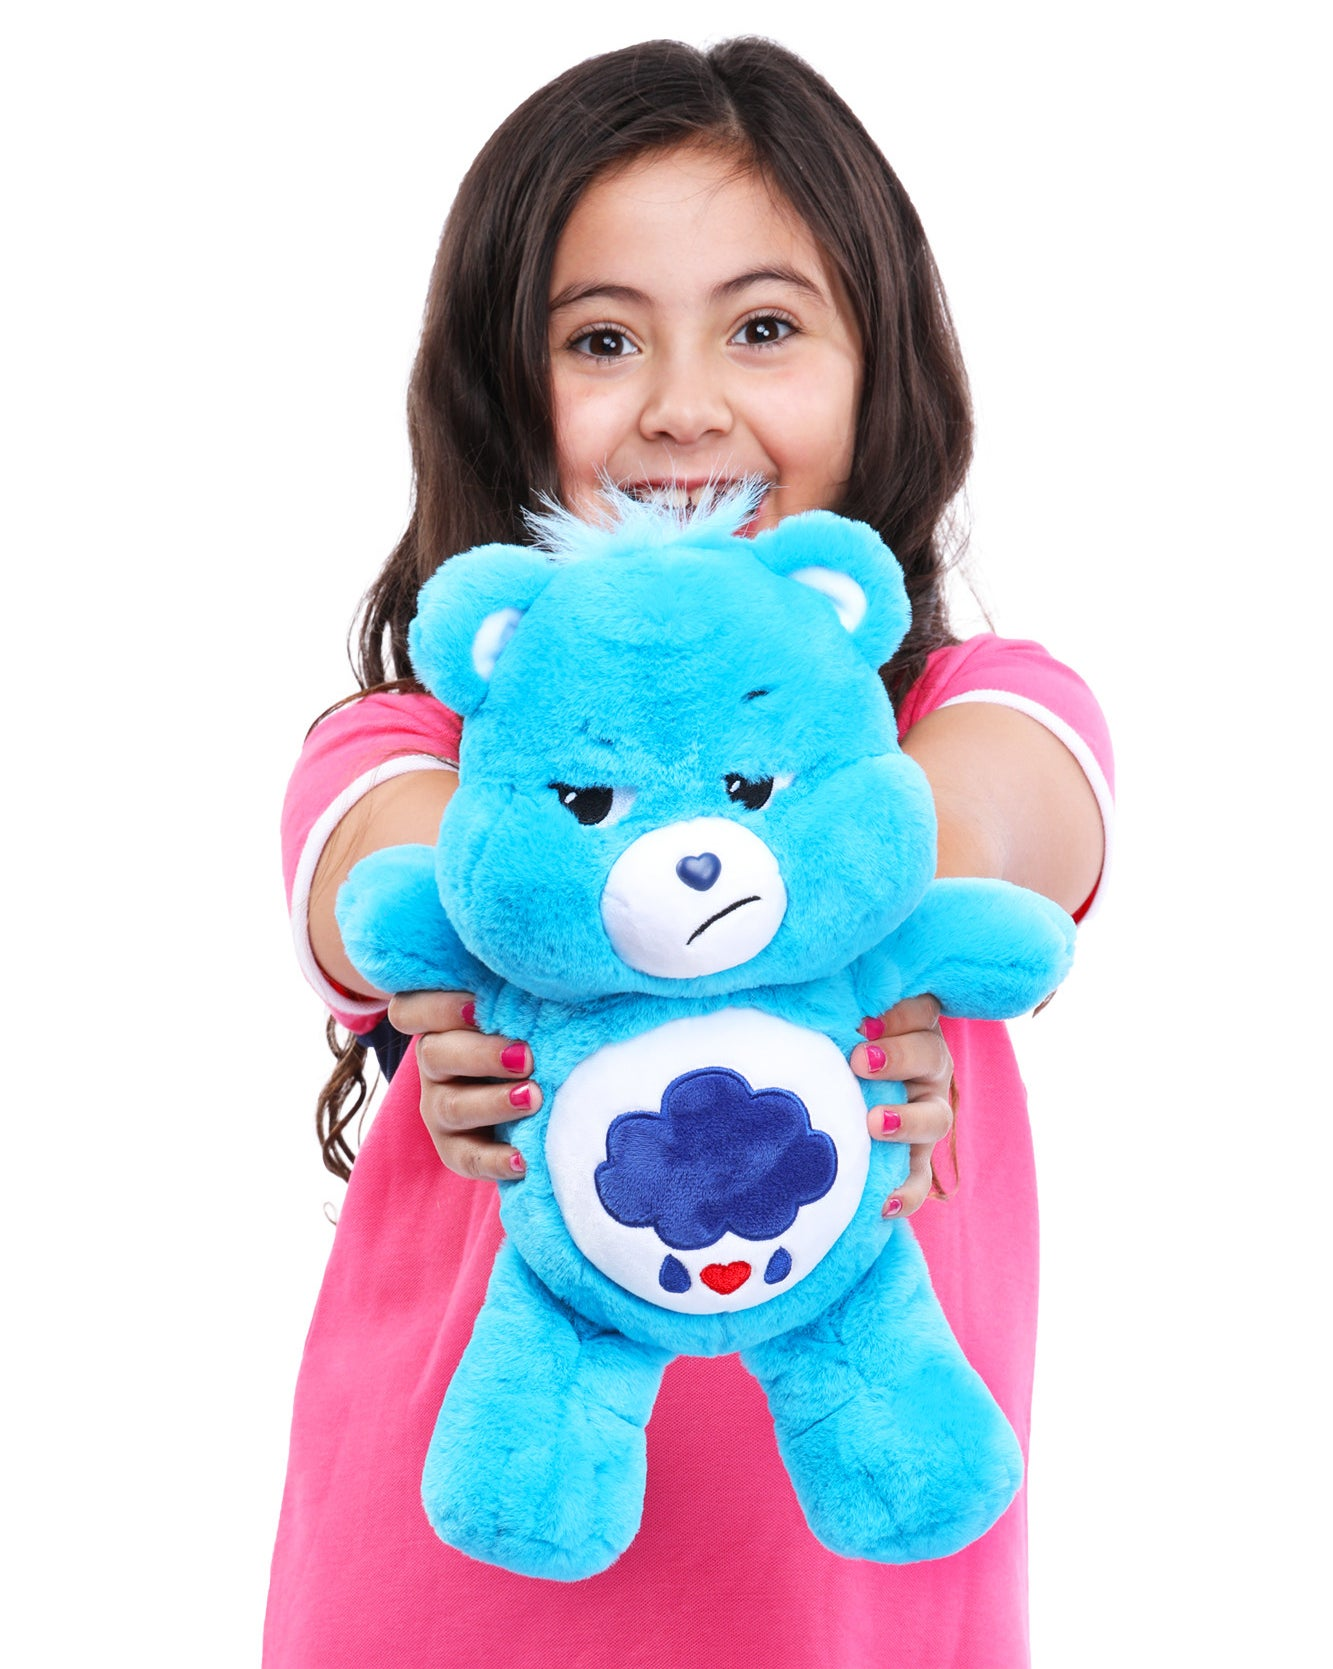 child holding up a blue grumpy-looking care bear